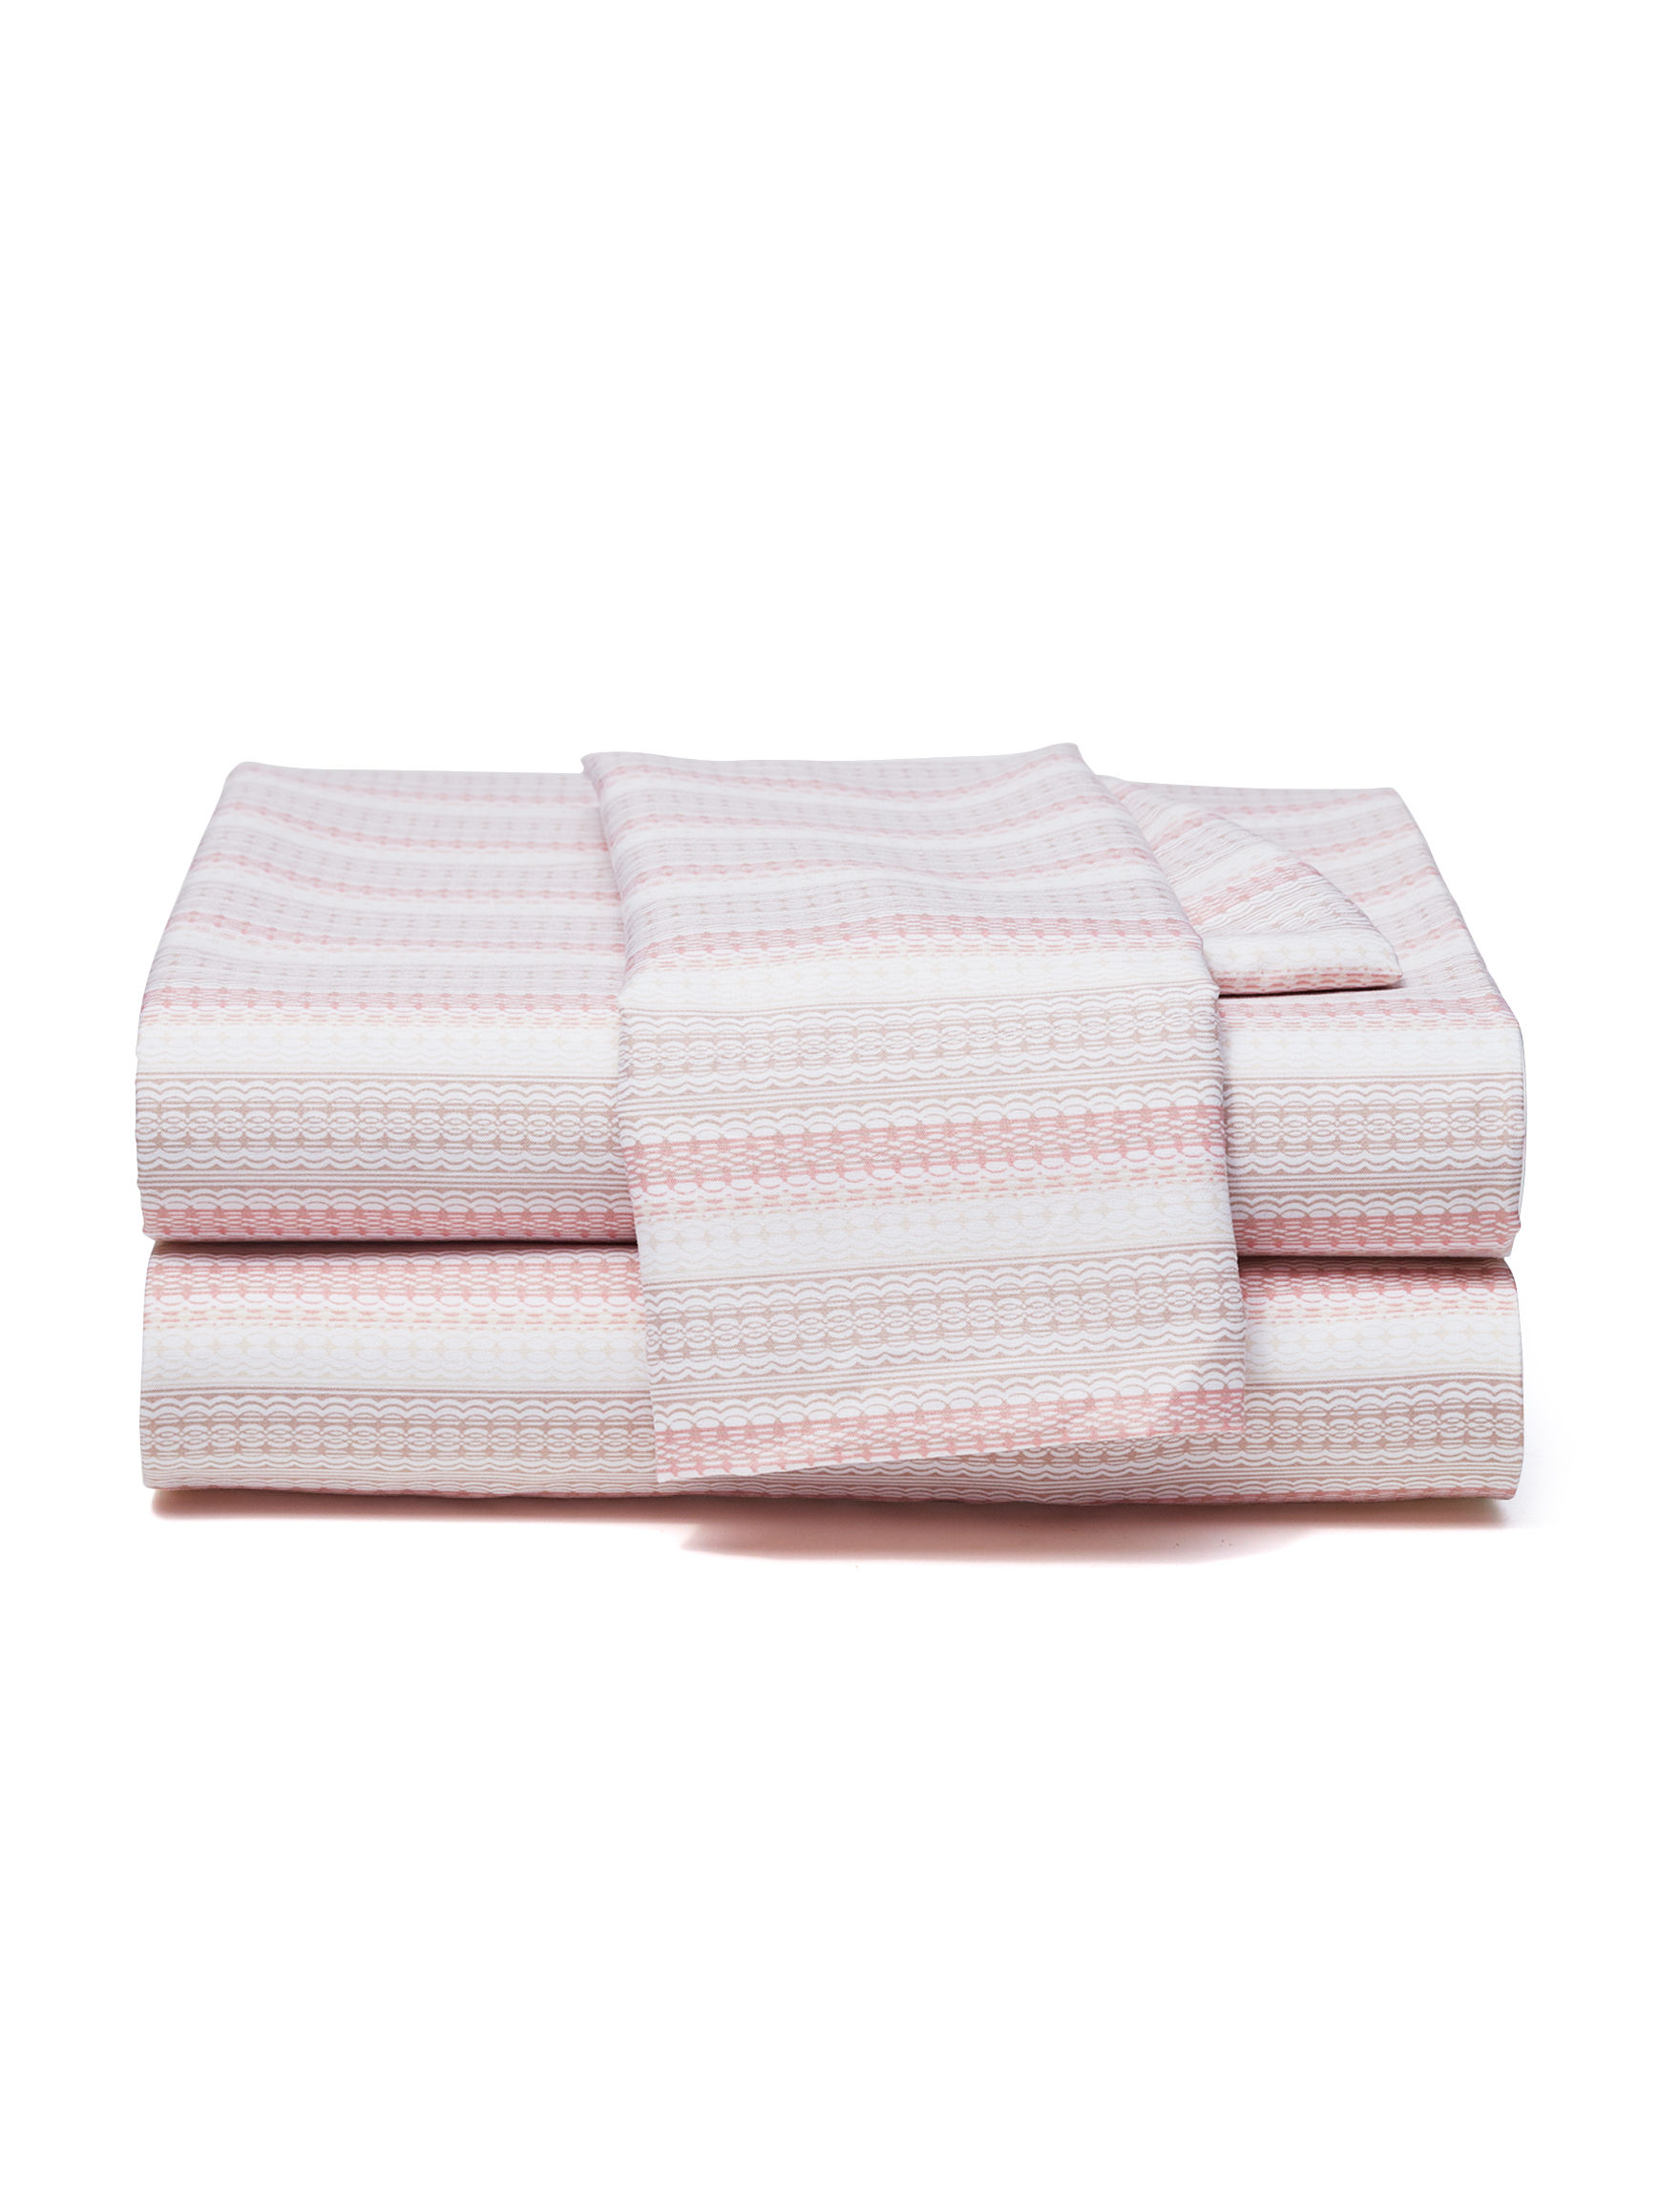 Great Hotels Collection Pink Stripe Sheets